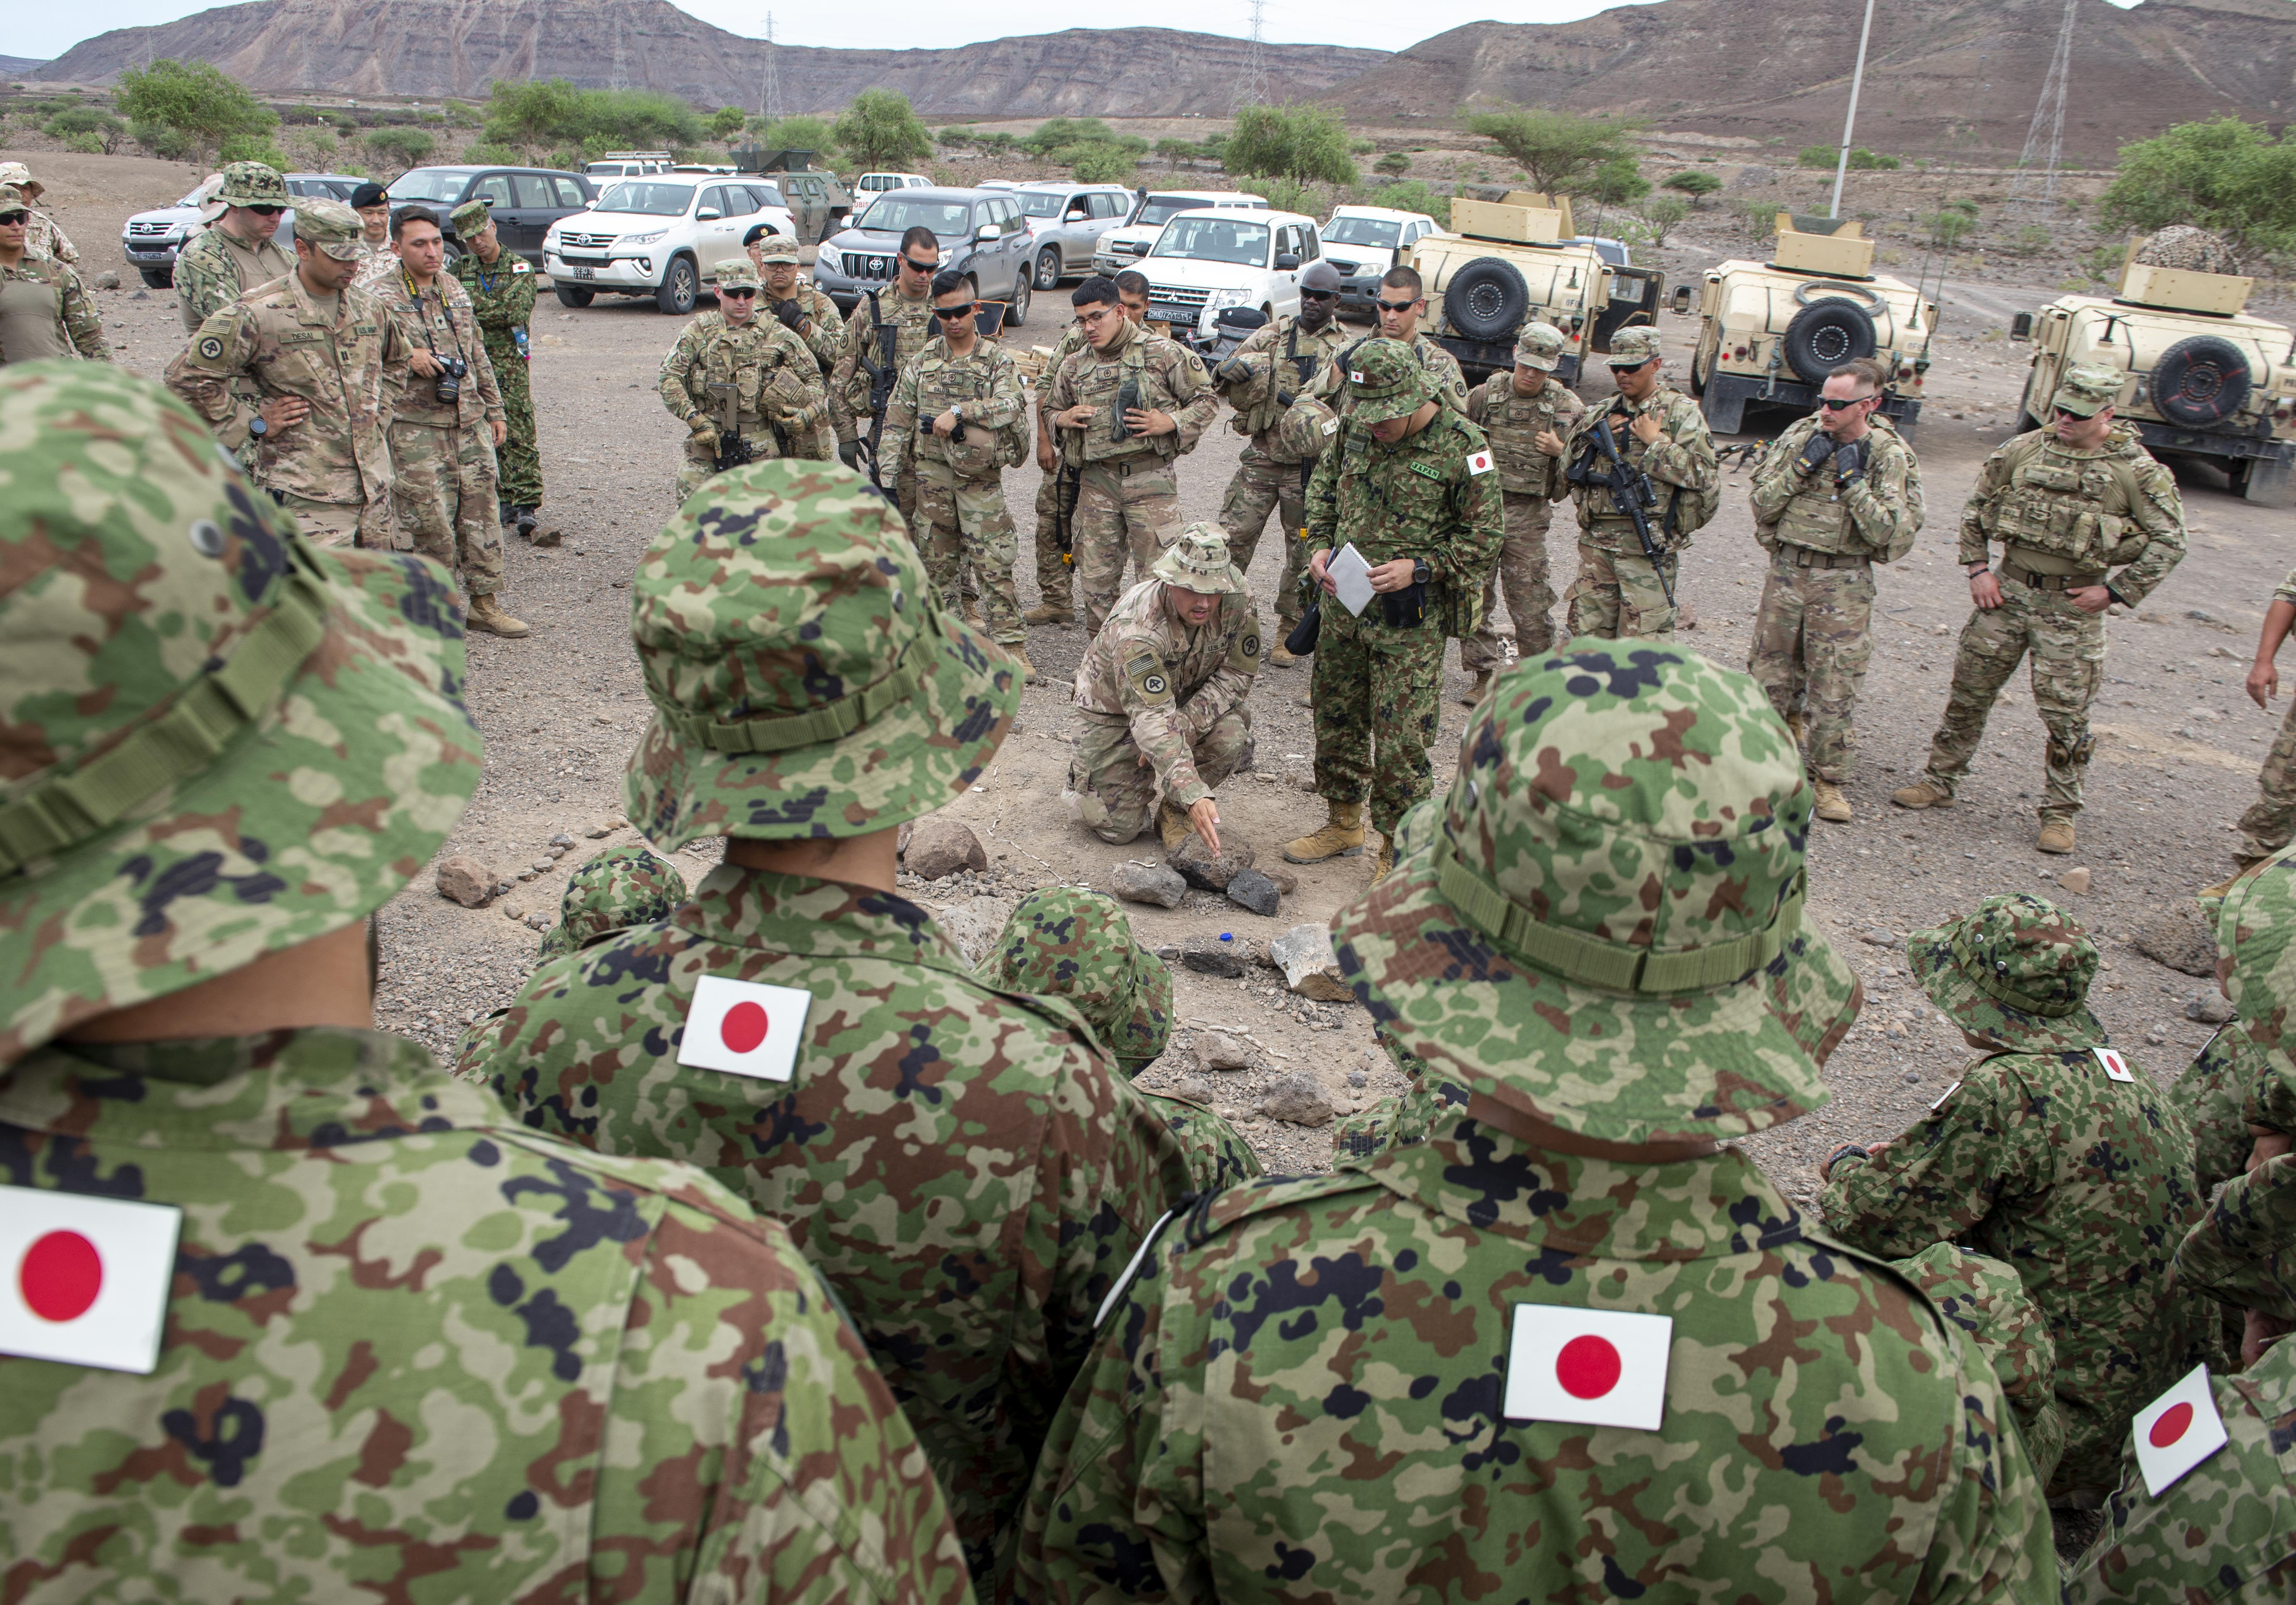 U.S. Army 1st Lt. Nicholas Sereday, executive officer for Charlie Company 2-113th Infantry assigned to Combined Joint Task Force-Horn of Africa (CJTF-HOA), gives a concept of operations (CONOP) brief to Japanese and U.S. military forces during a bilateral field training exercise (FTX) in Djibouti, Africa, Oct. 2, 2019. The FTX was part of a Japanese-led noncombatant evacuation operation (NEO) exercise, which also included African coalition partners. (U.S. Air Force photo by Senior Airman Gabrielle Spalding)